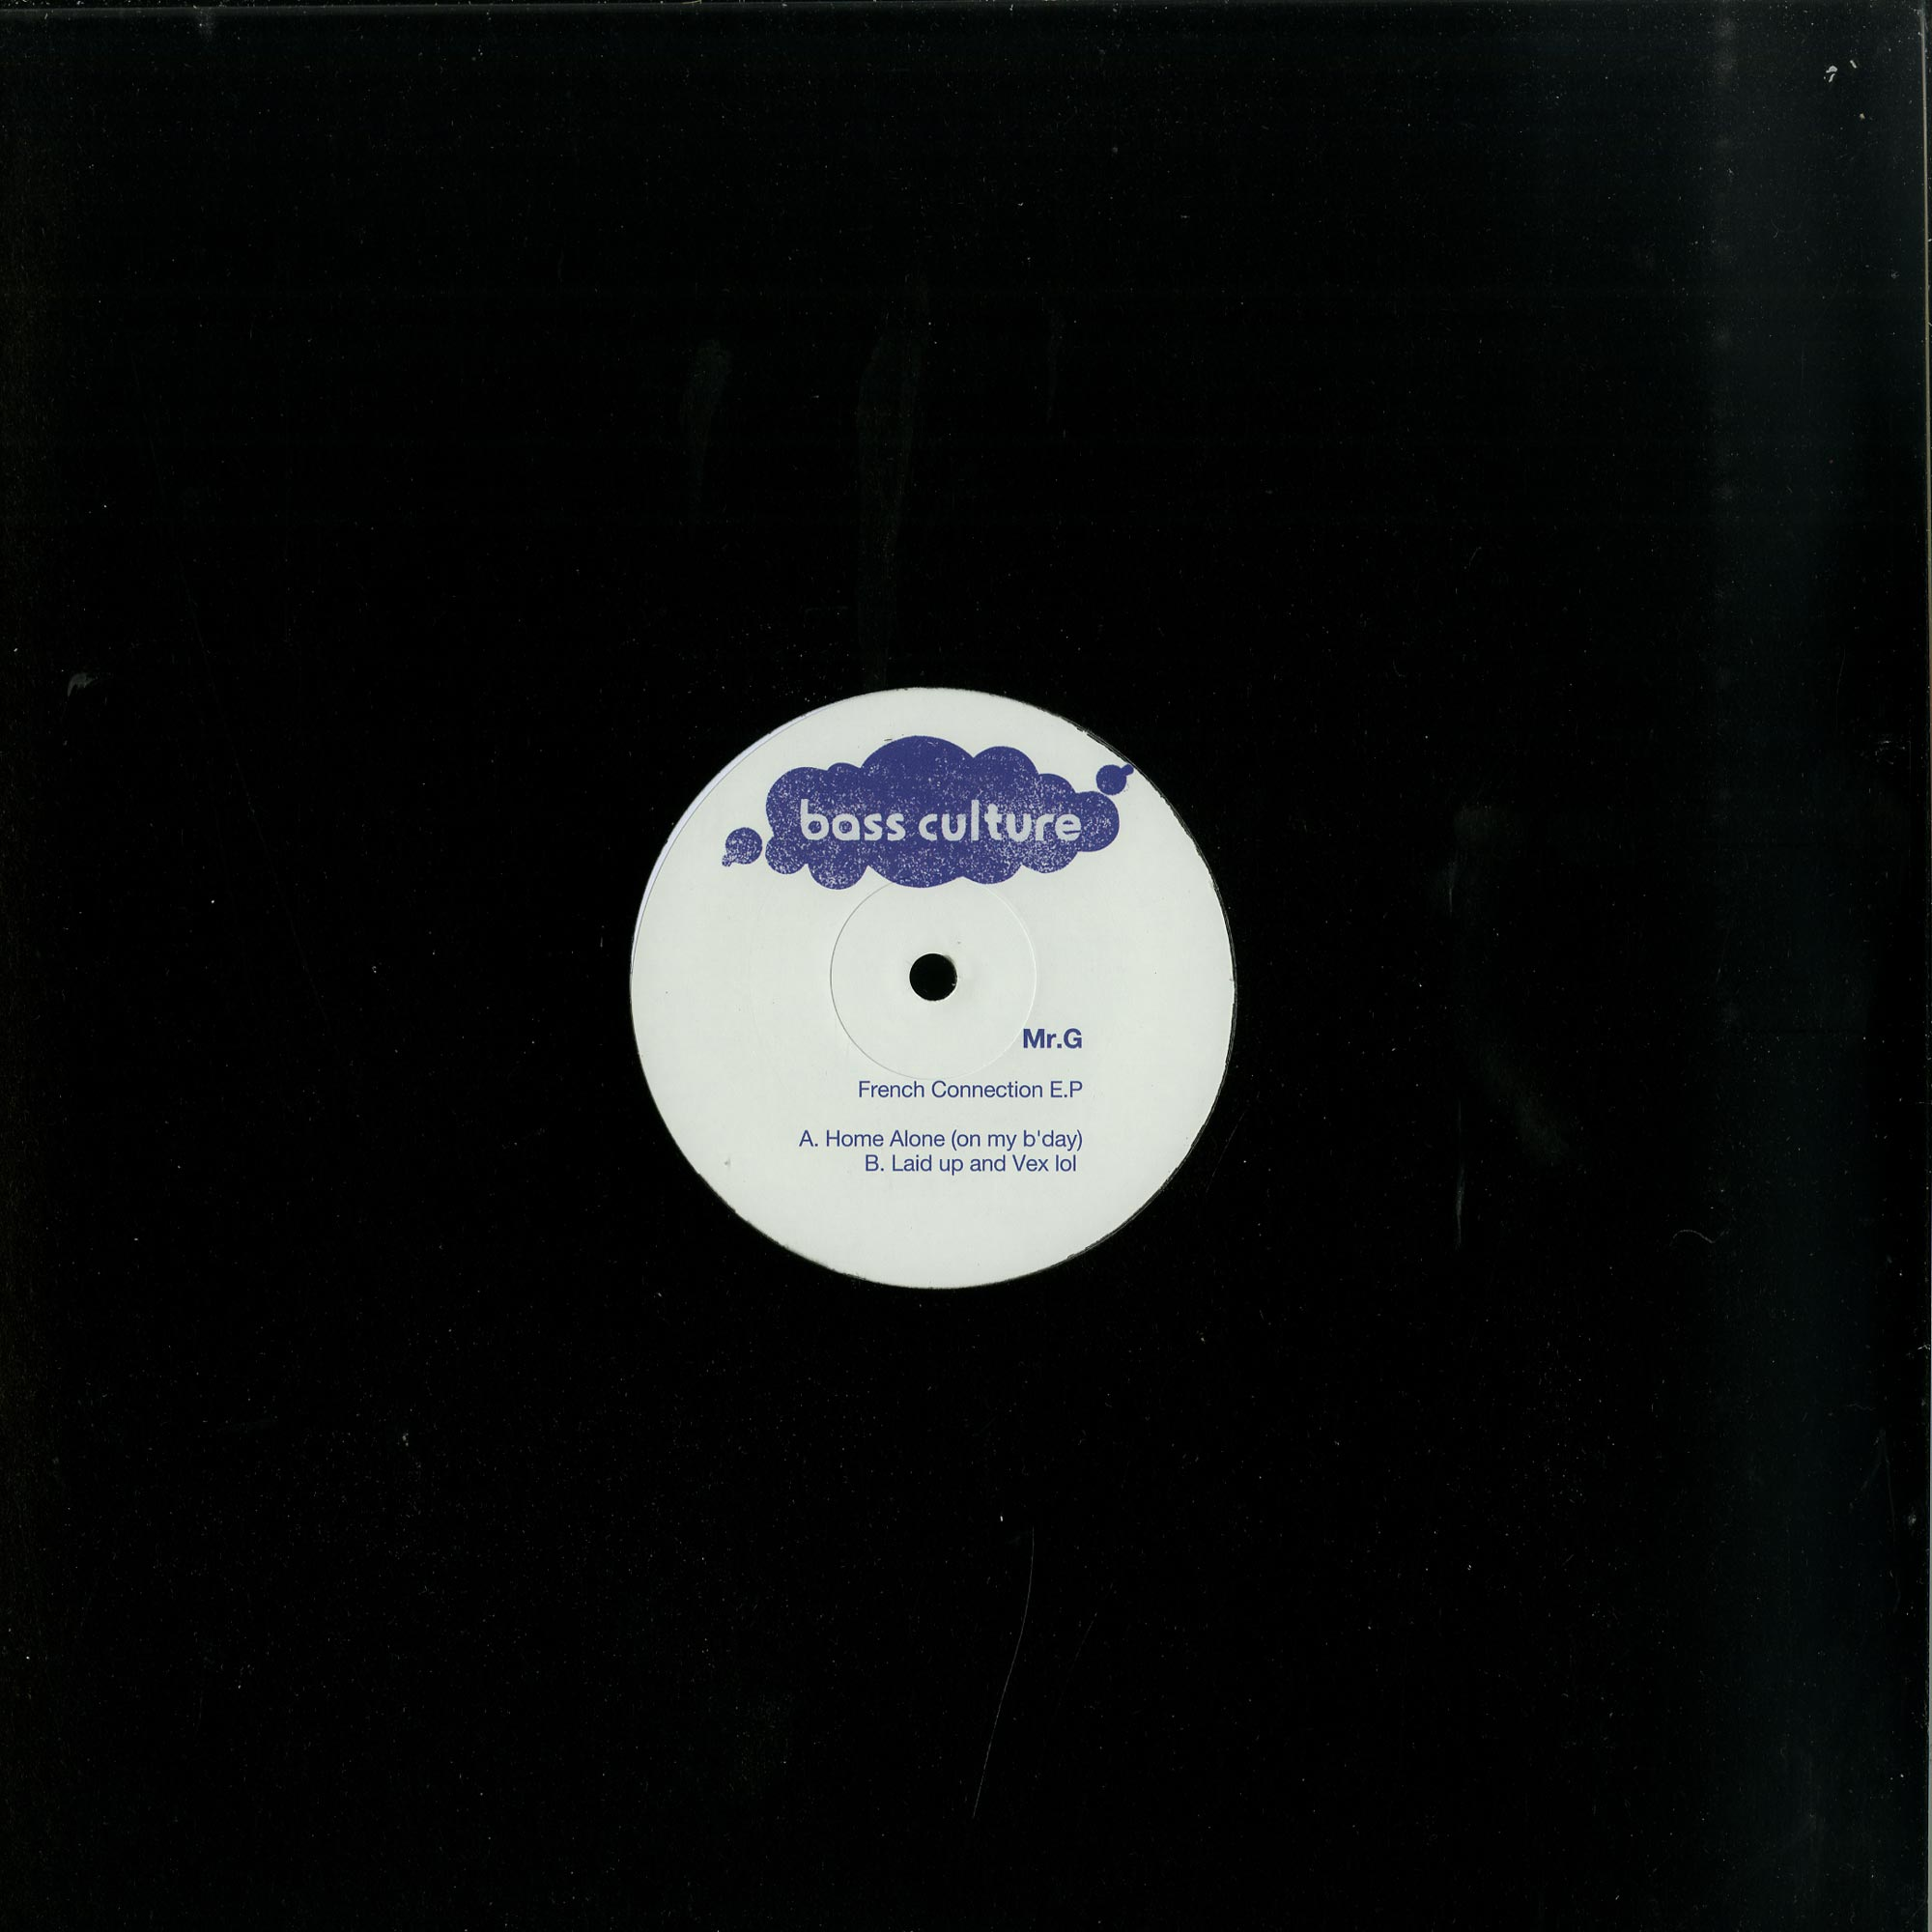 Mr. G - FRENCH CONNECTION E.P